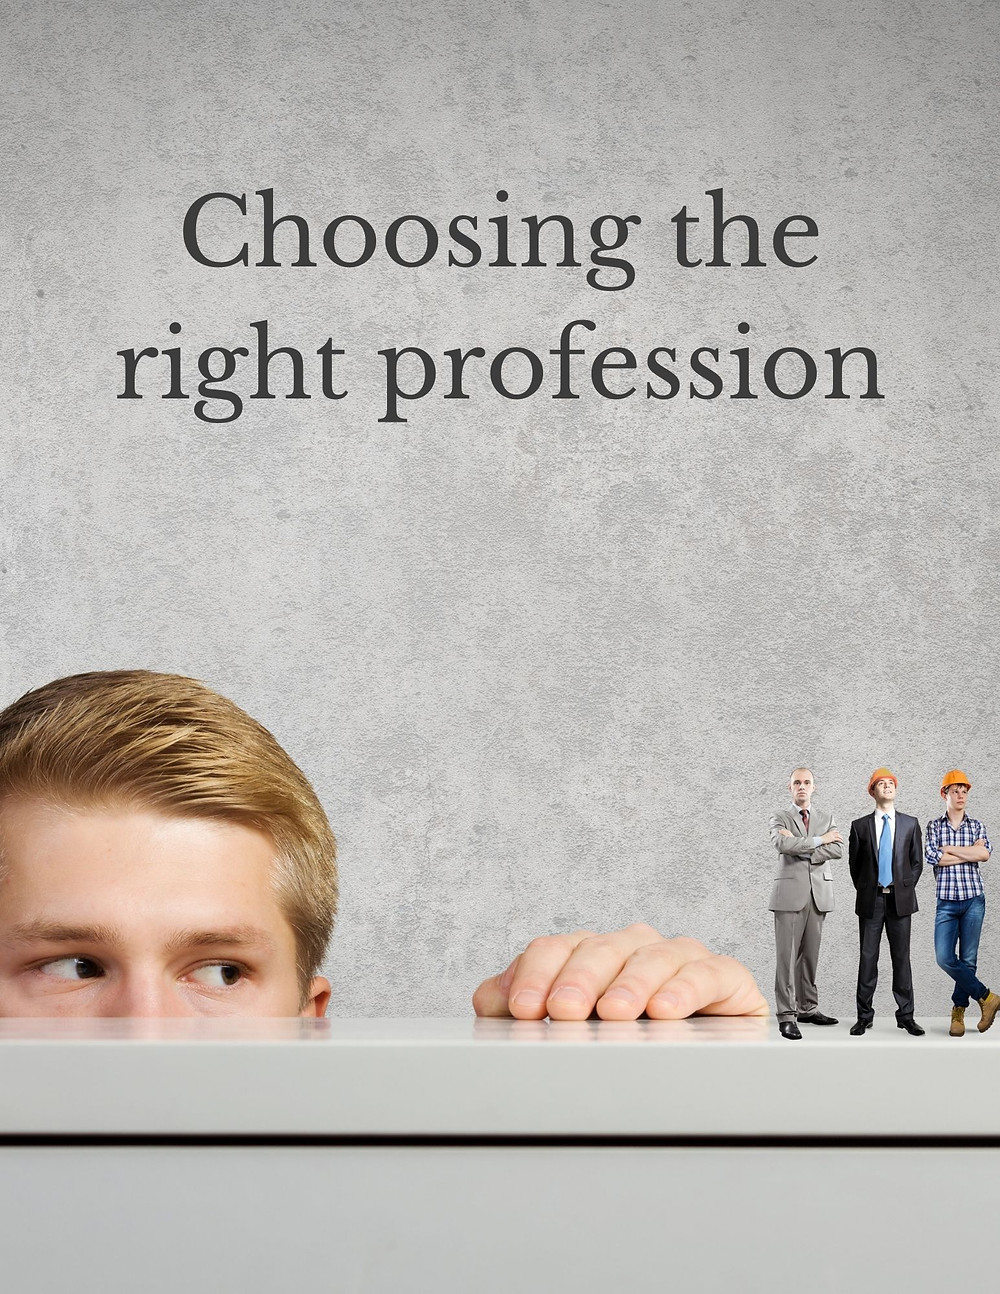 Choosing the right profession